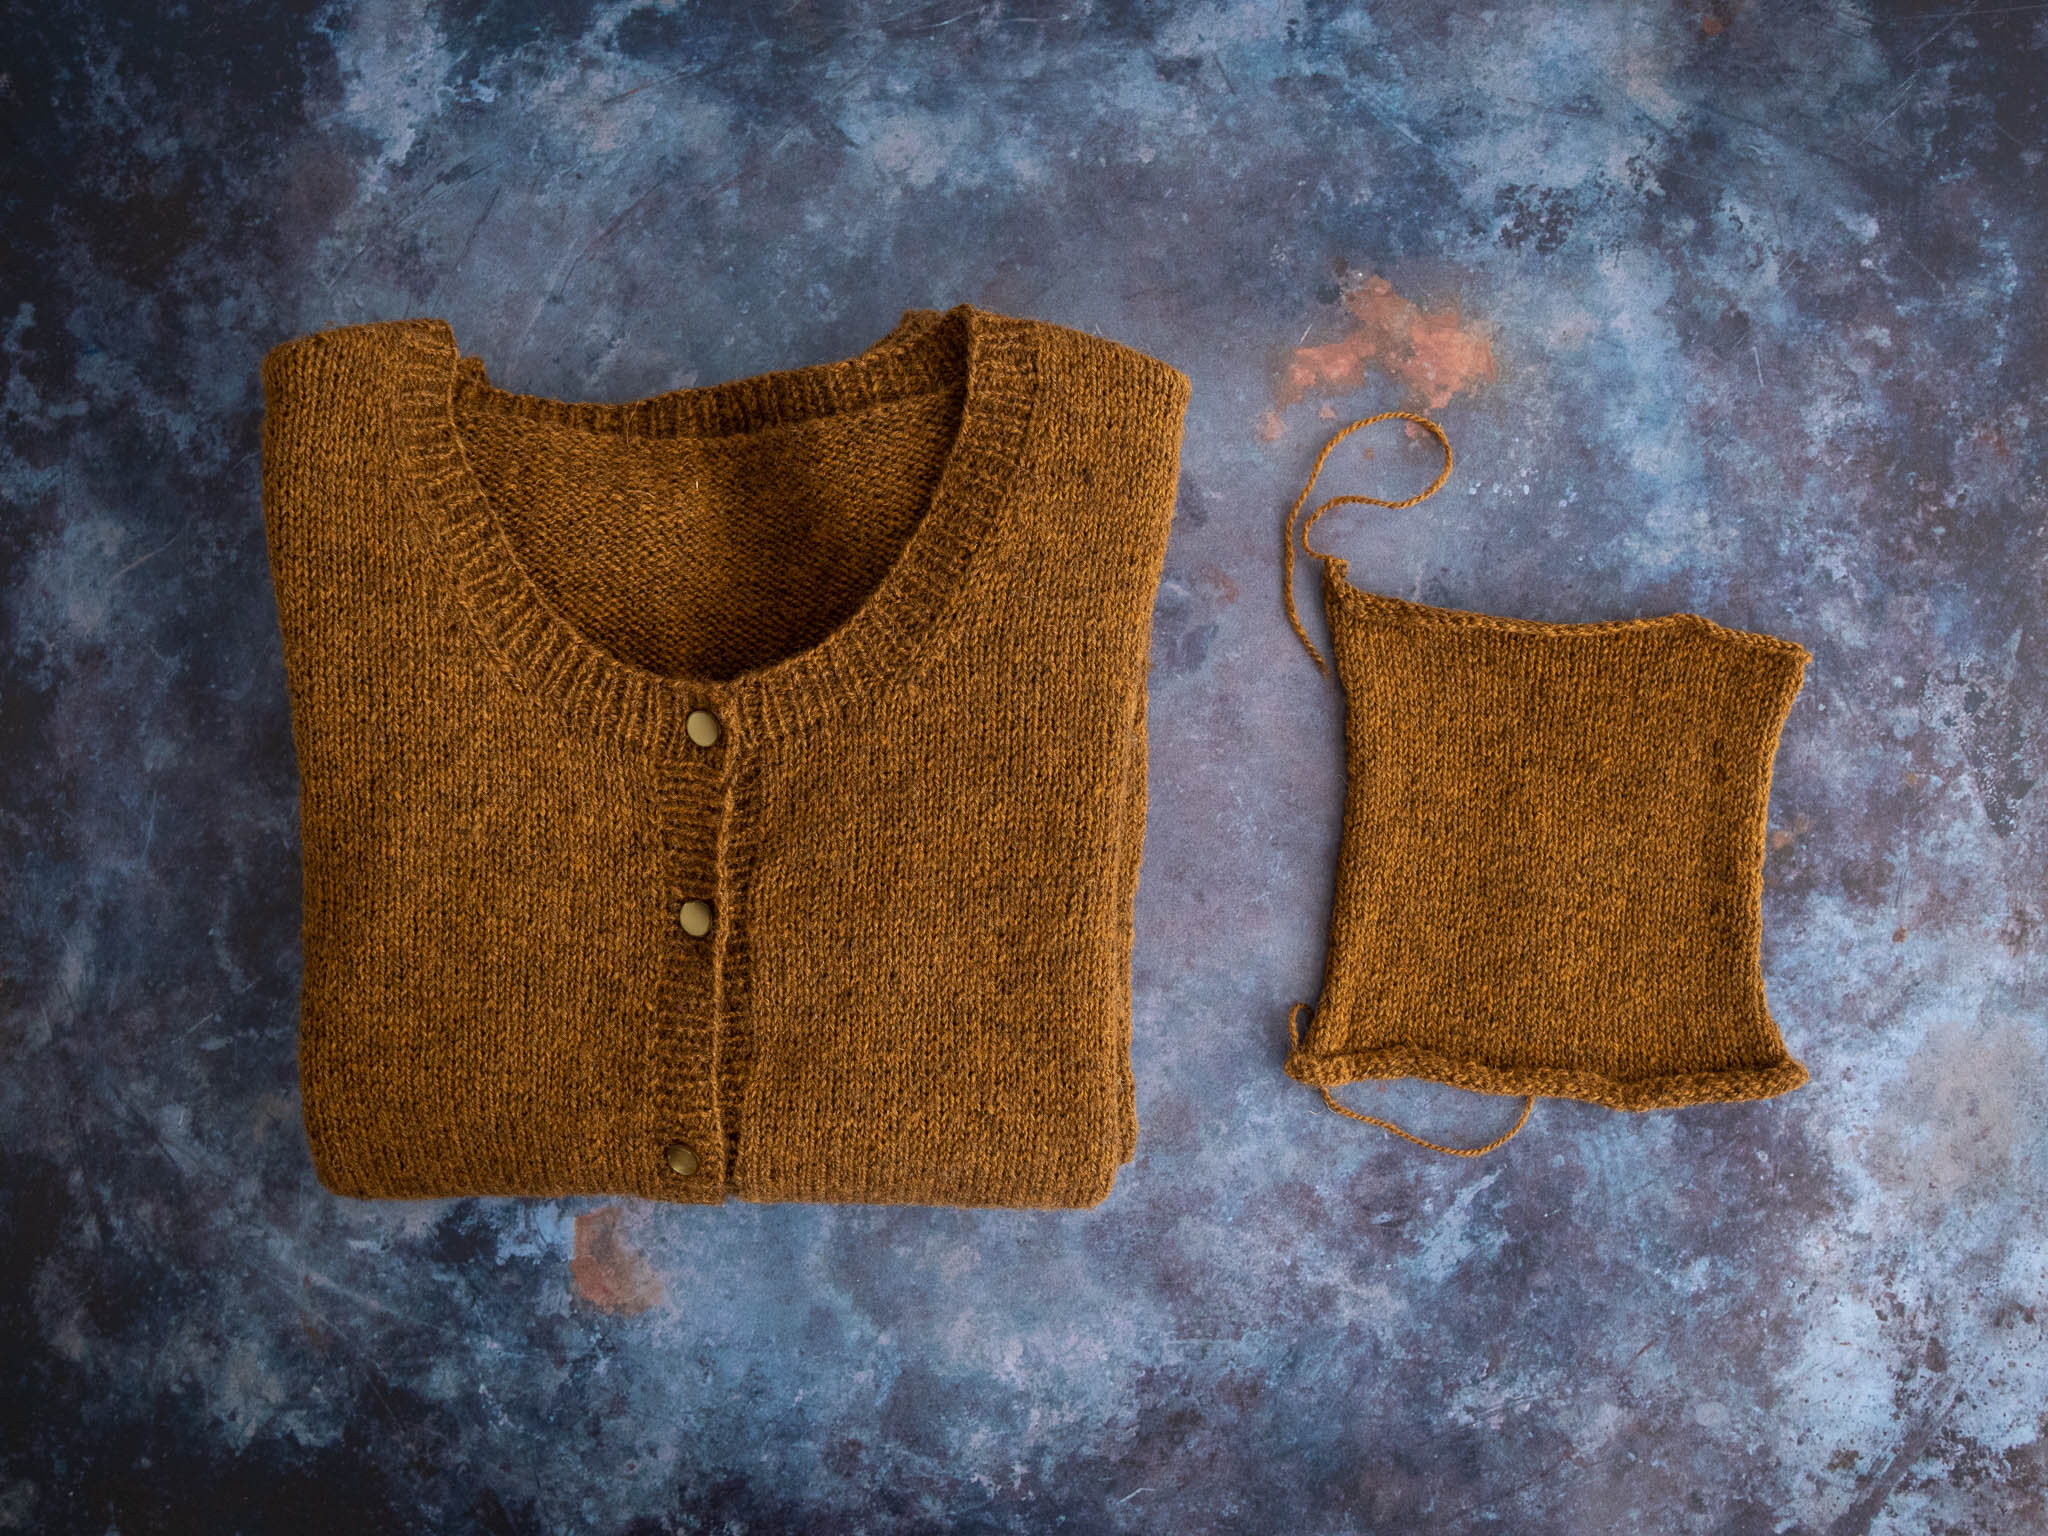 A honey brown cardigan with round neck is folded and lies on a moody dark blue flat surface. To the right of the sweater is a small swatch in the same yarn.